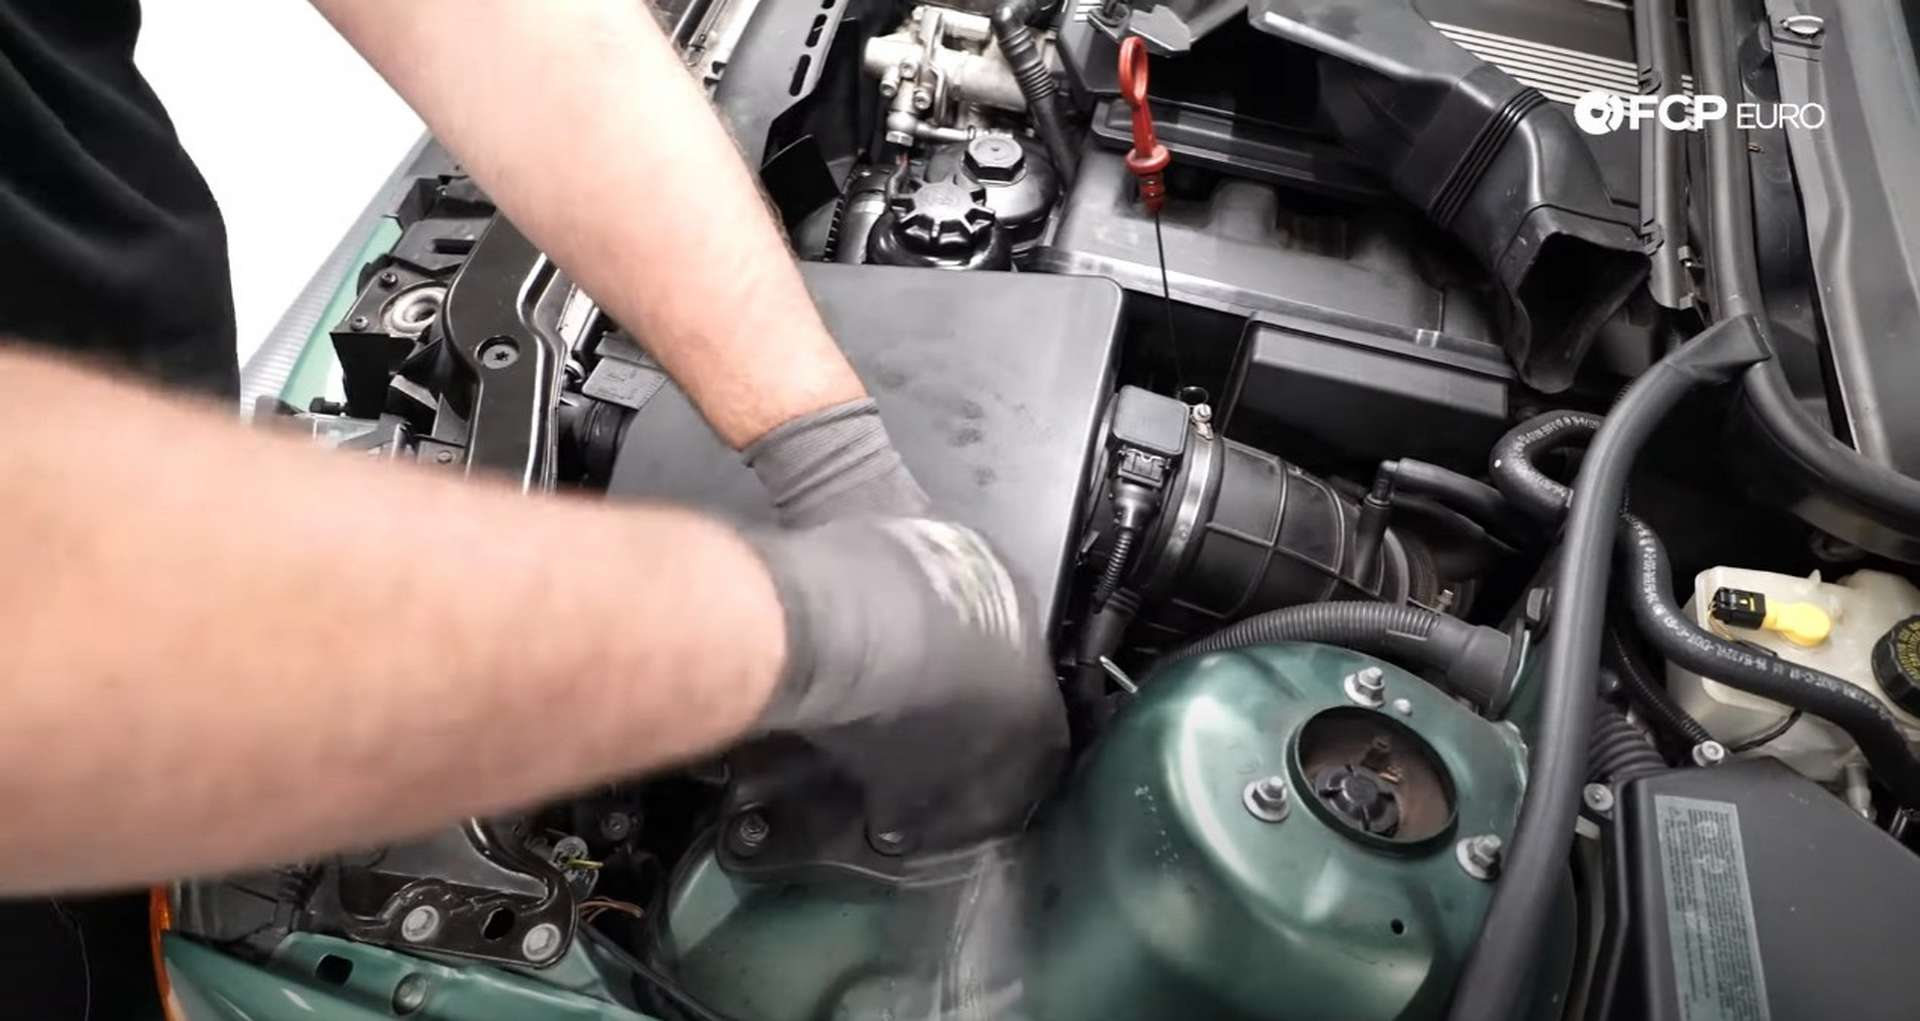 DIY BMW E46 Oil Filter Housing Gasket and VANOS Line Replacement reinstalling the airbox